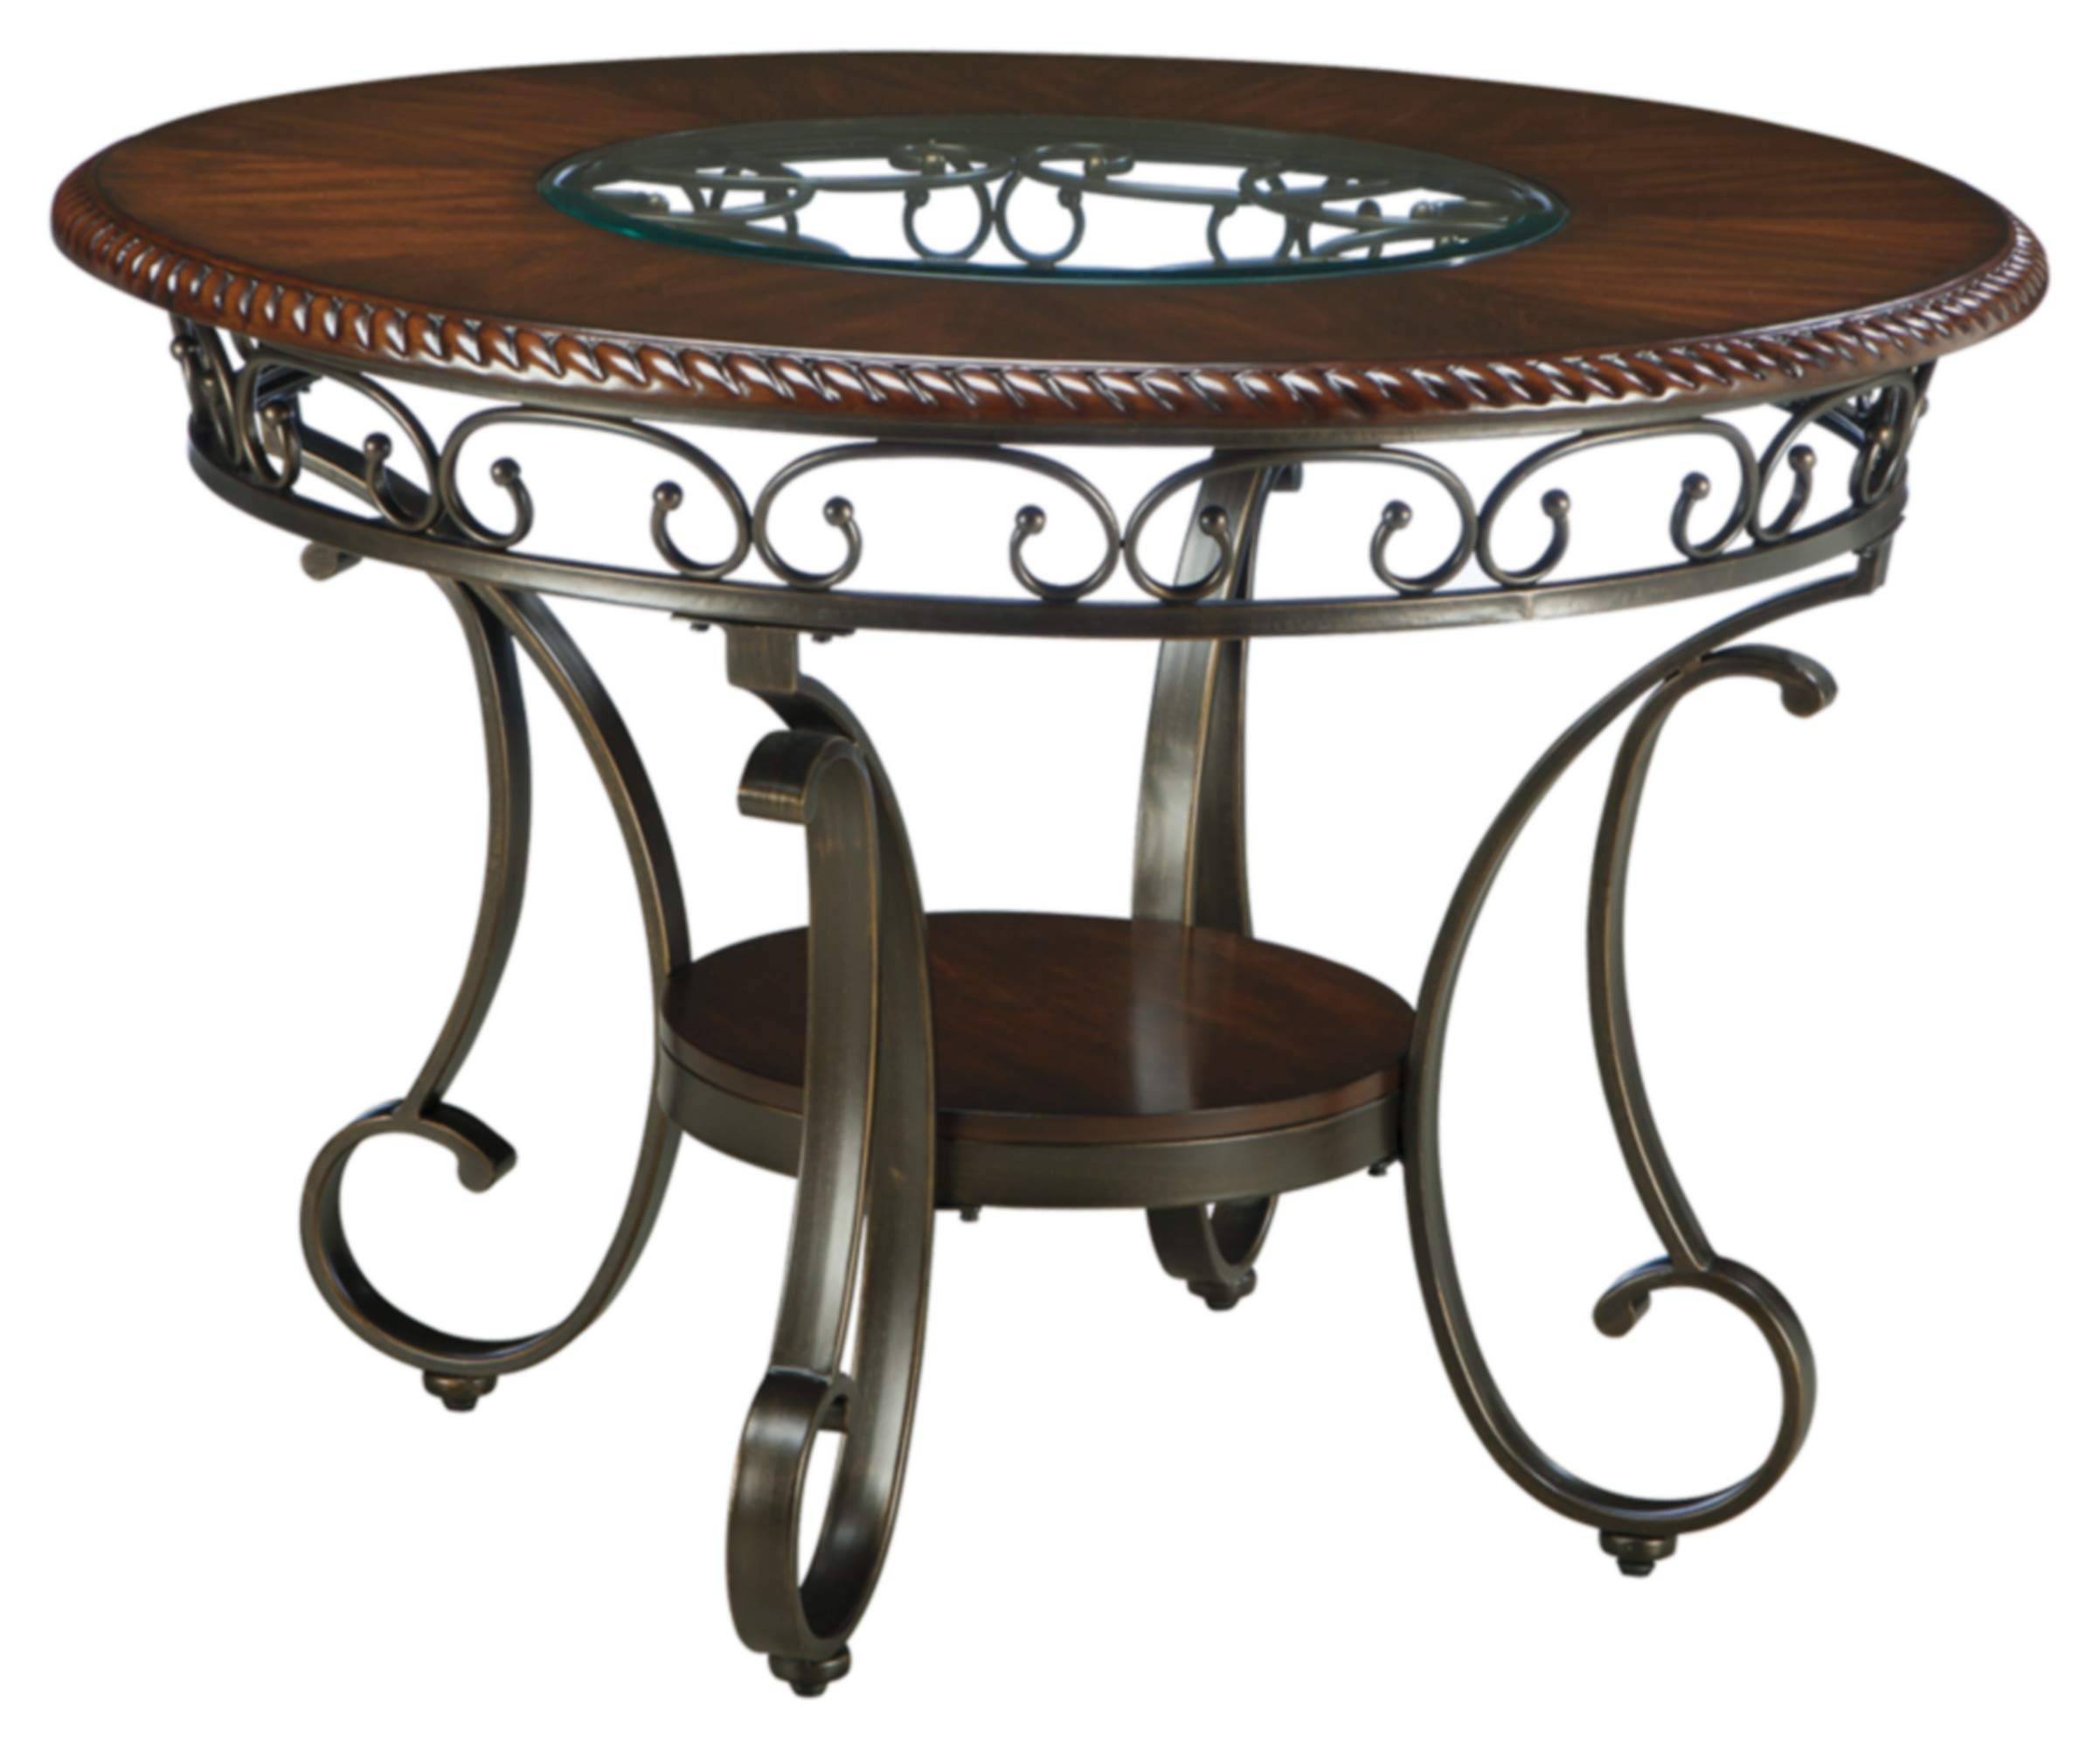 Ashley Furniture Signature Design - Glambrey Dining Room Table - Round - Brown by Signature Design by Ashley (Image #1)